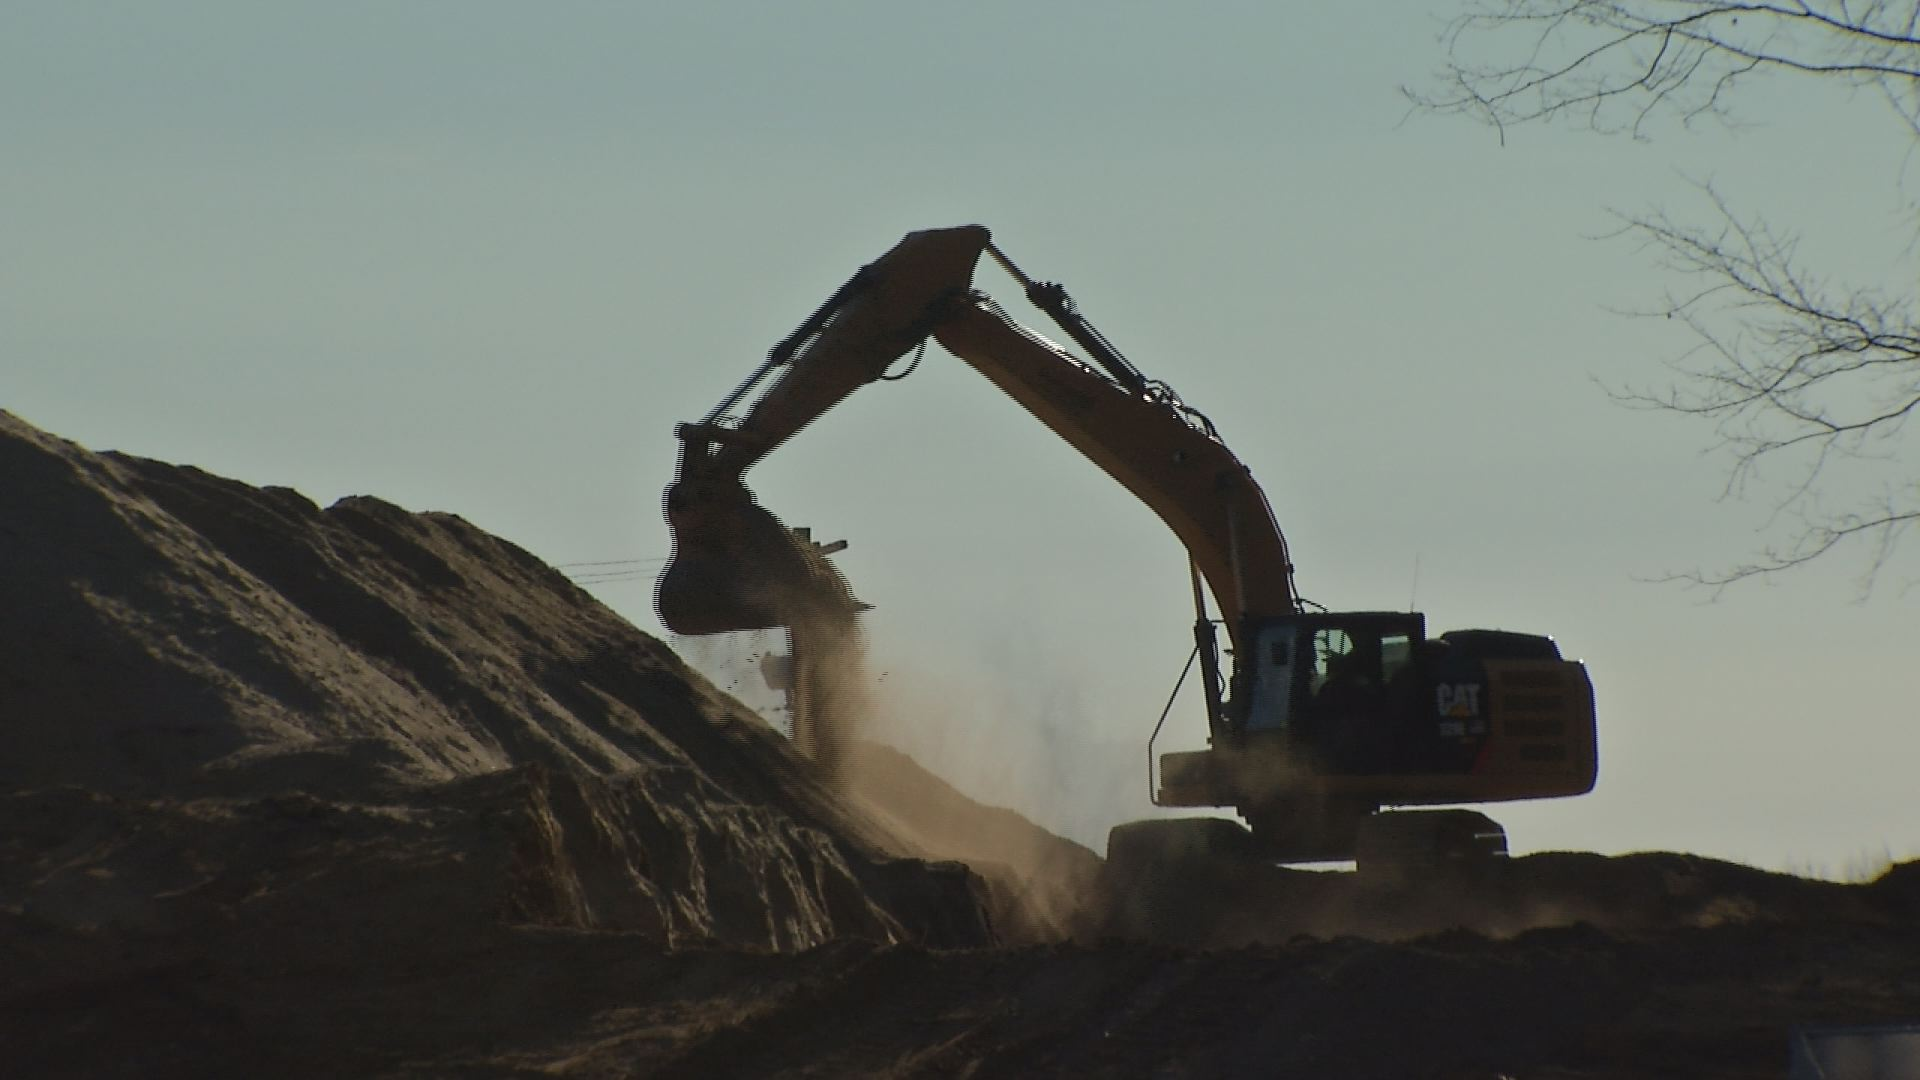 Construction is underway on the new Sandy Hook Elementary School.